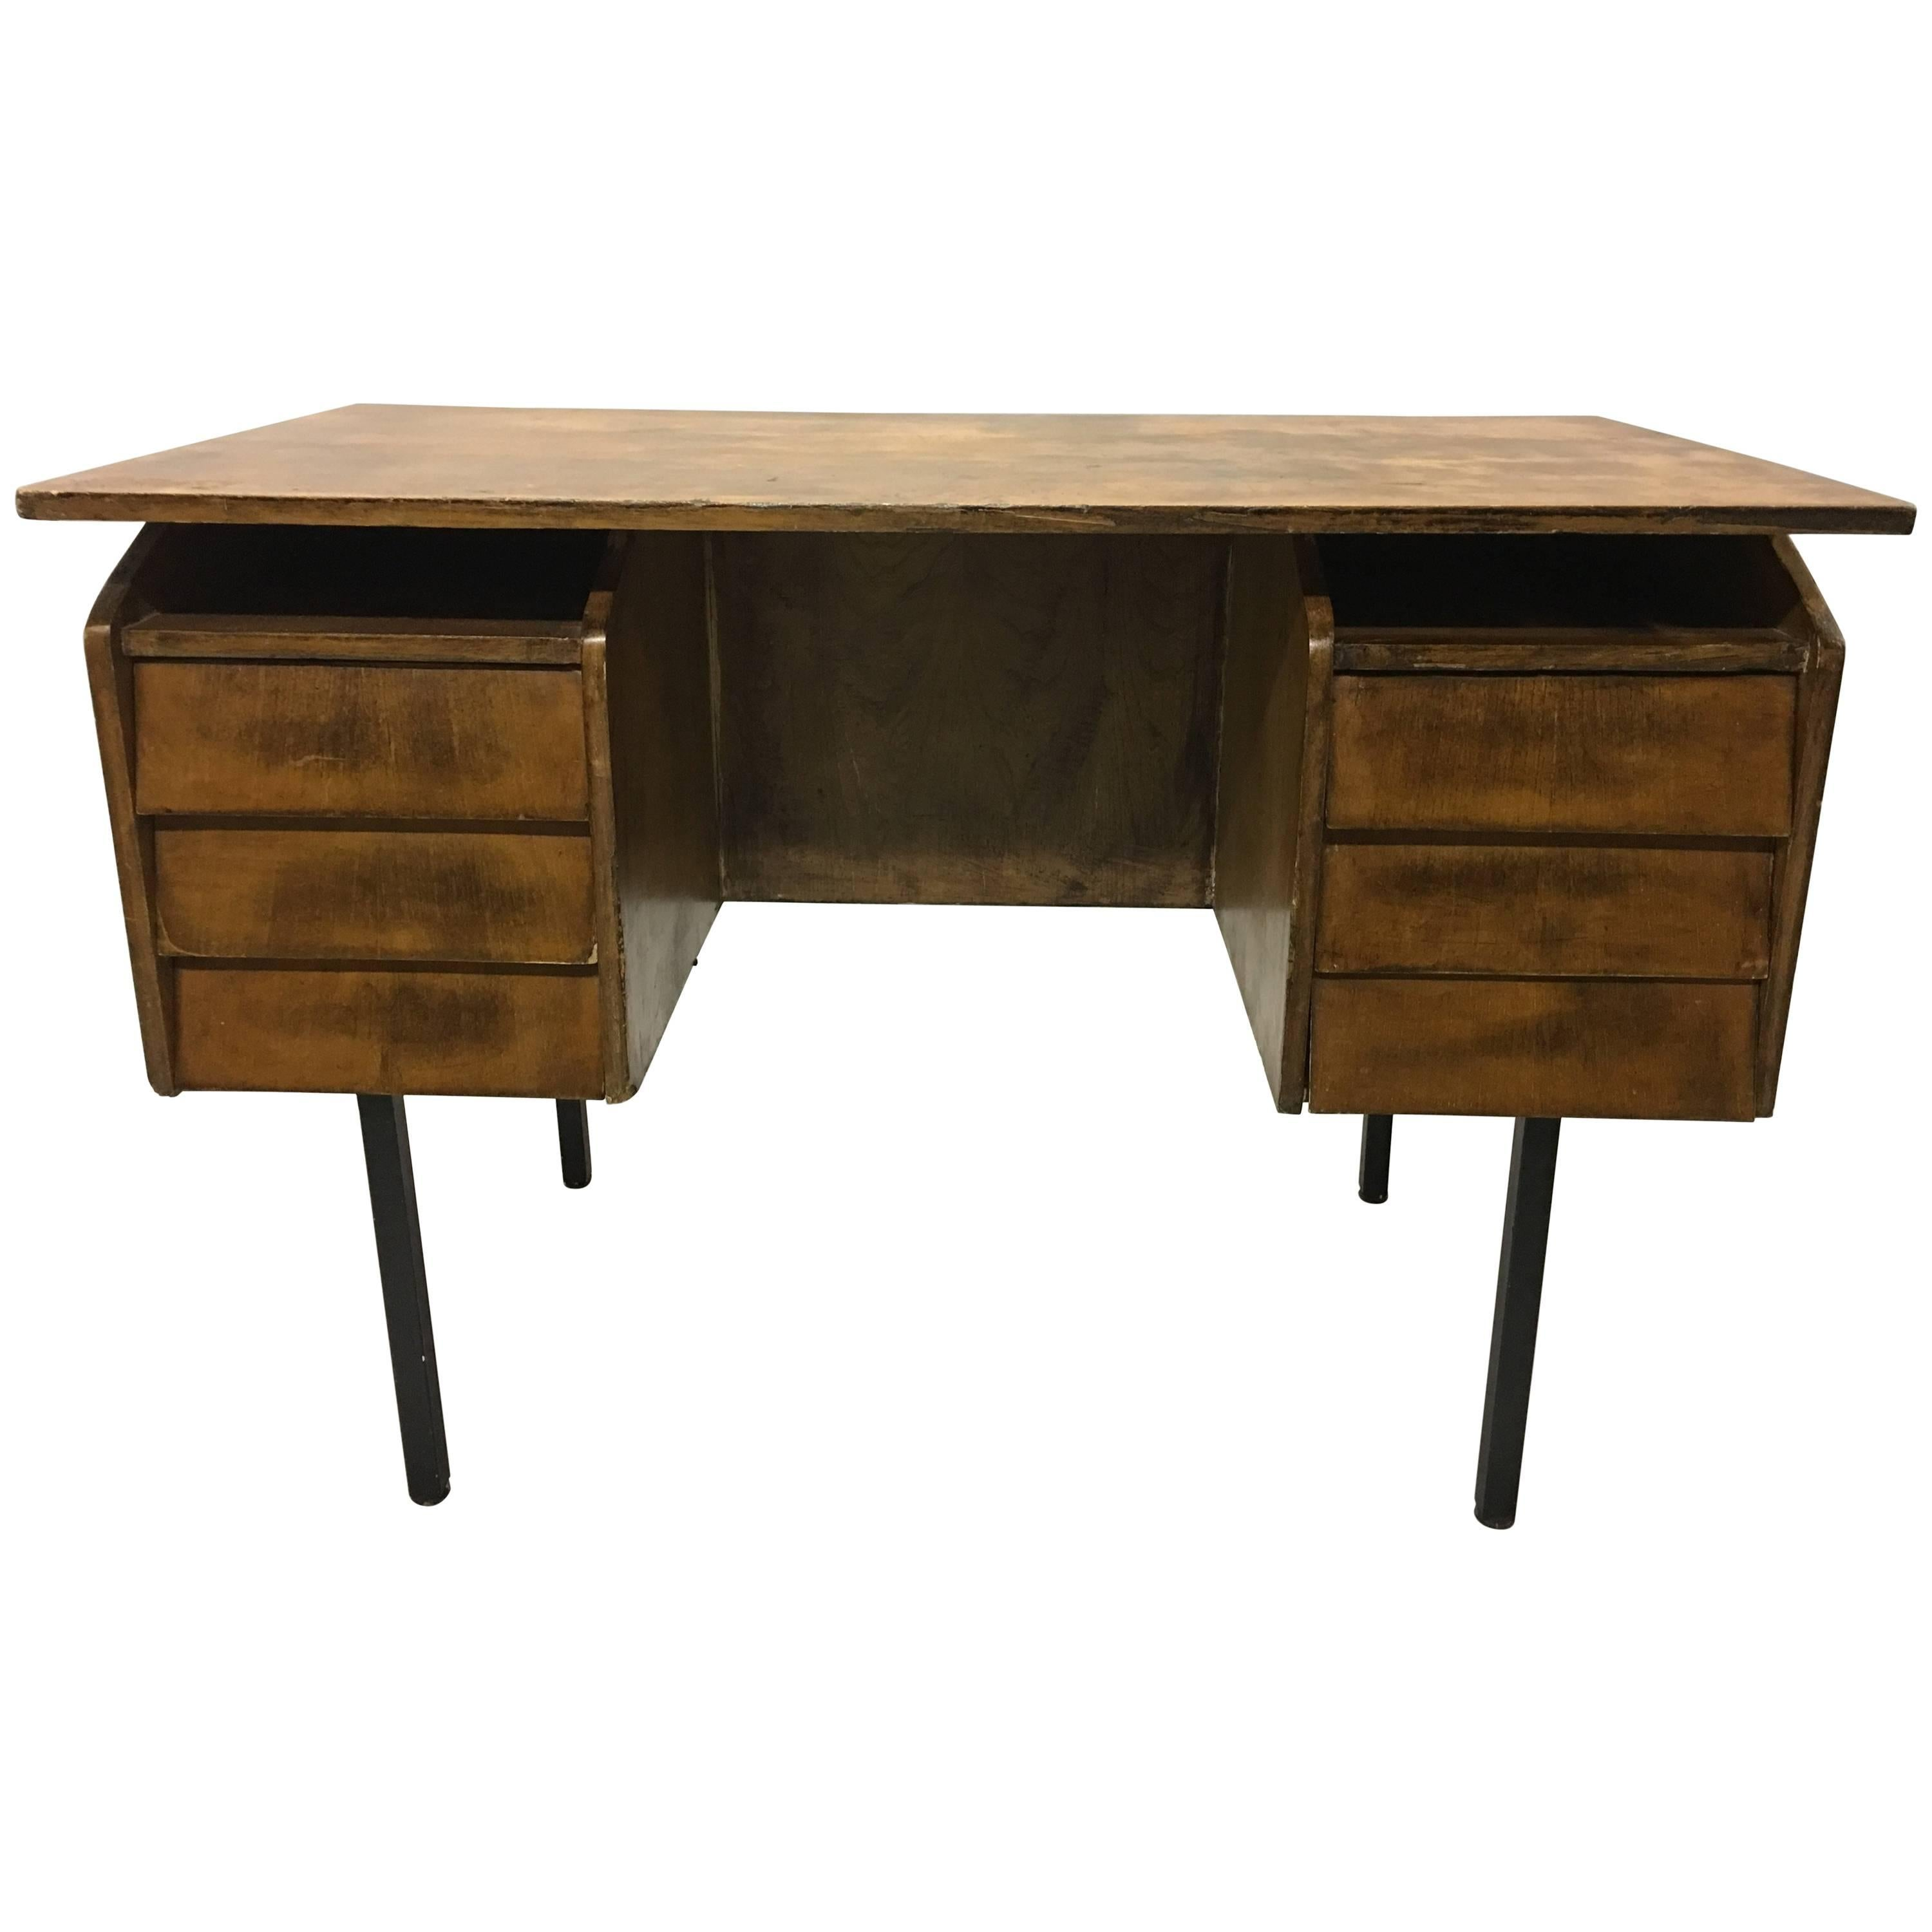 Merveilleux German Mid Century Modern Cantilevered Wood And Metal Desk By Voss, 1950  For Sale